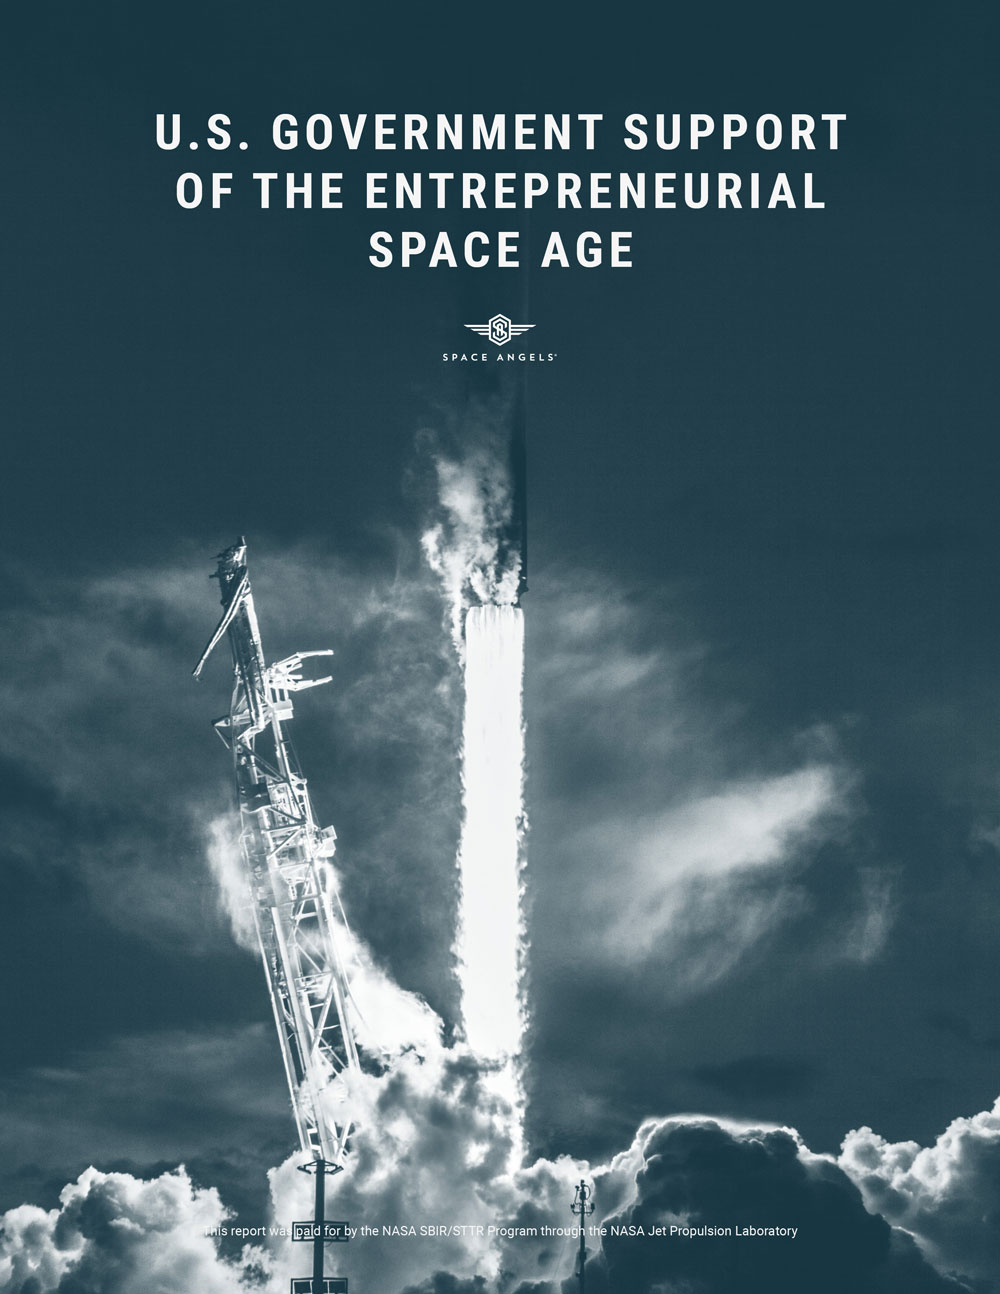 US Government Support of the Entrepreneurial Space Age